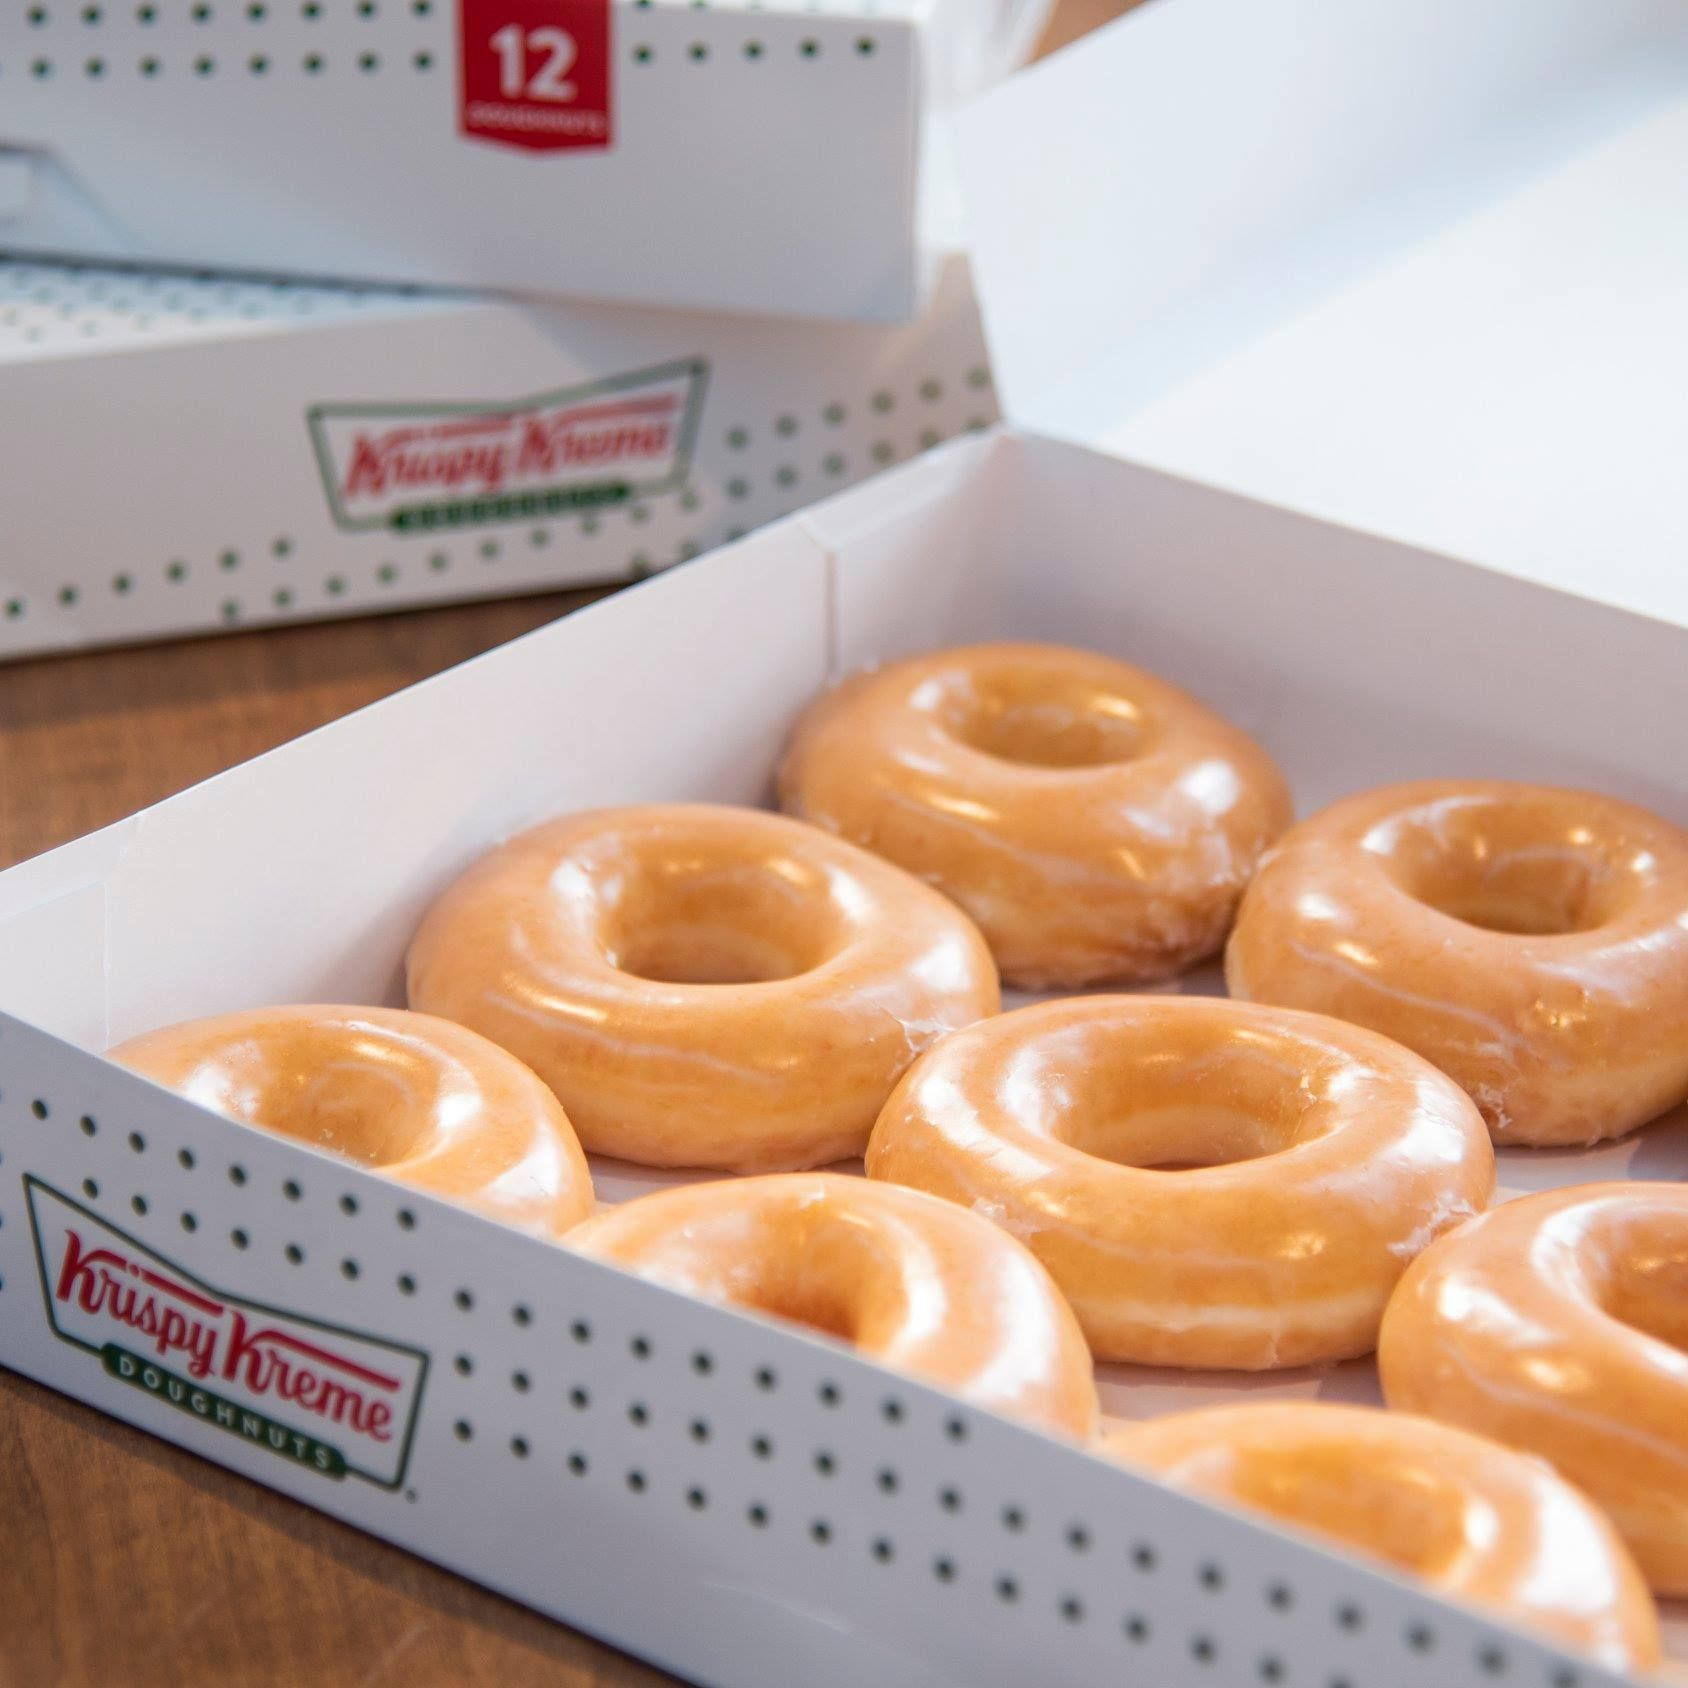 Krispy Kreme's Friday The 13th Deal Is 2 Dozen Donuts For $13, So This Holiday Is Good Now